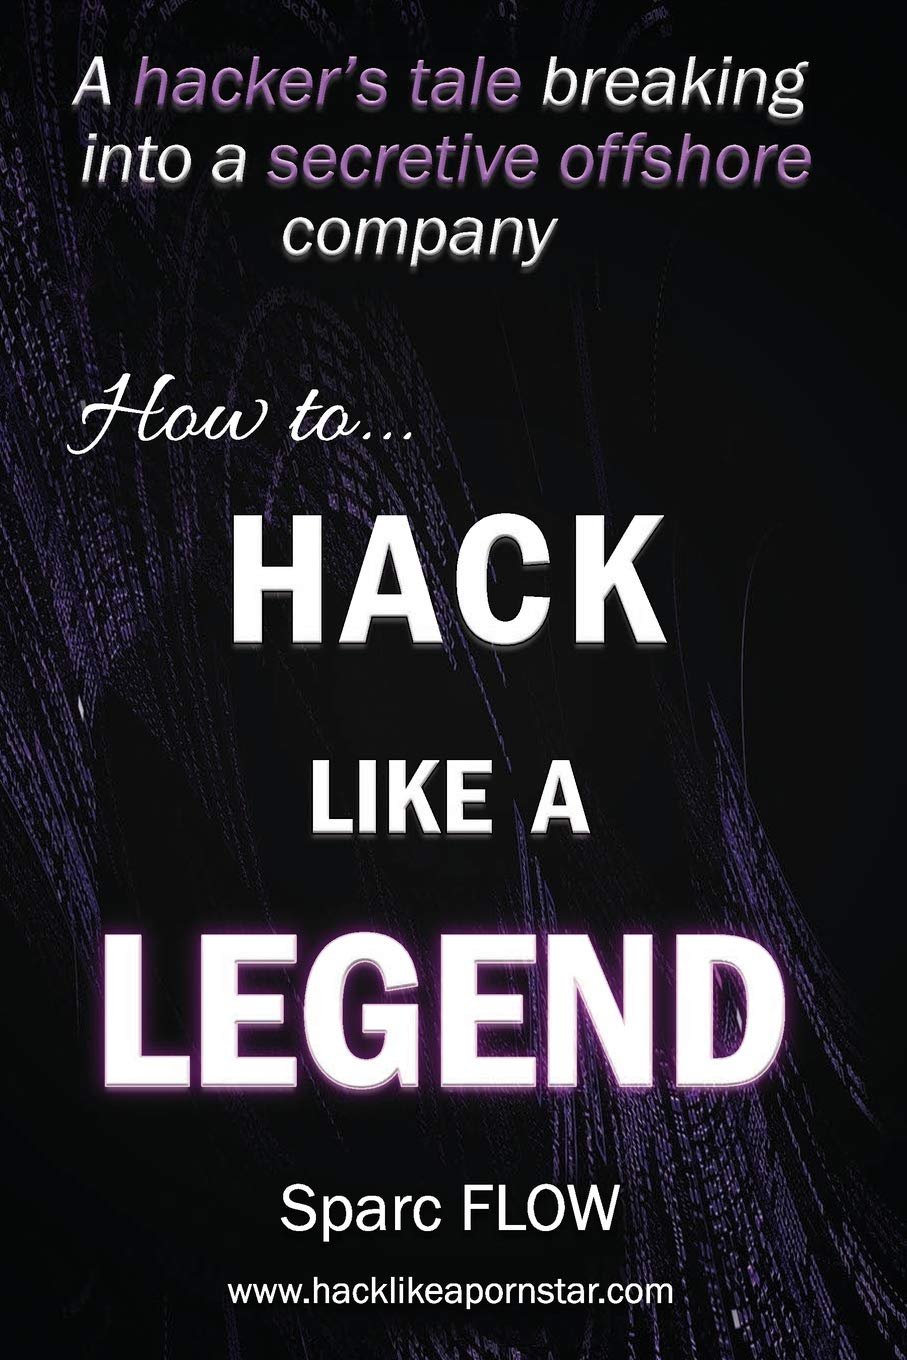 How To Hack Like A LEGEND: A Hacker's Tale Breaking Into A Secretive Offshore Company